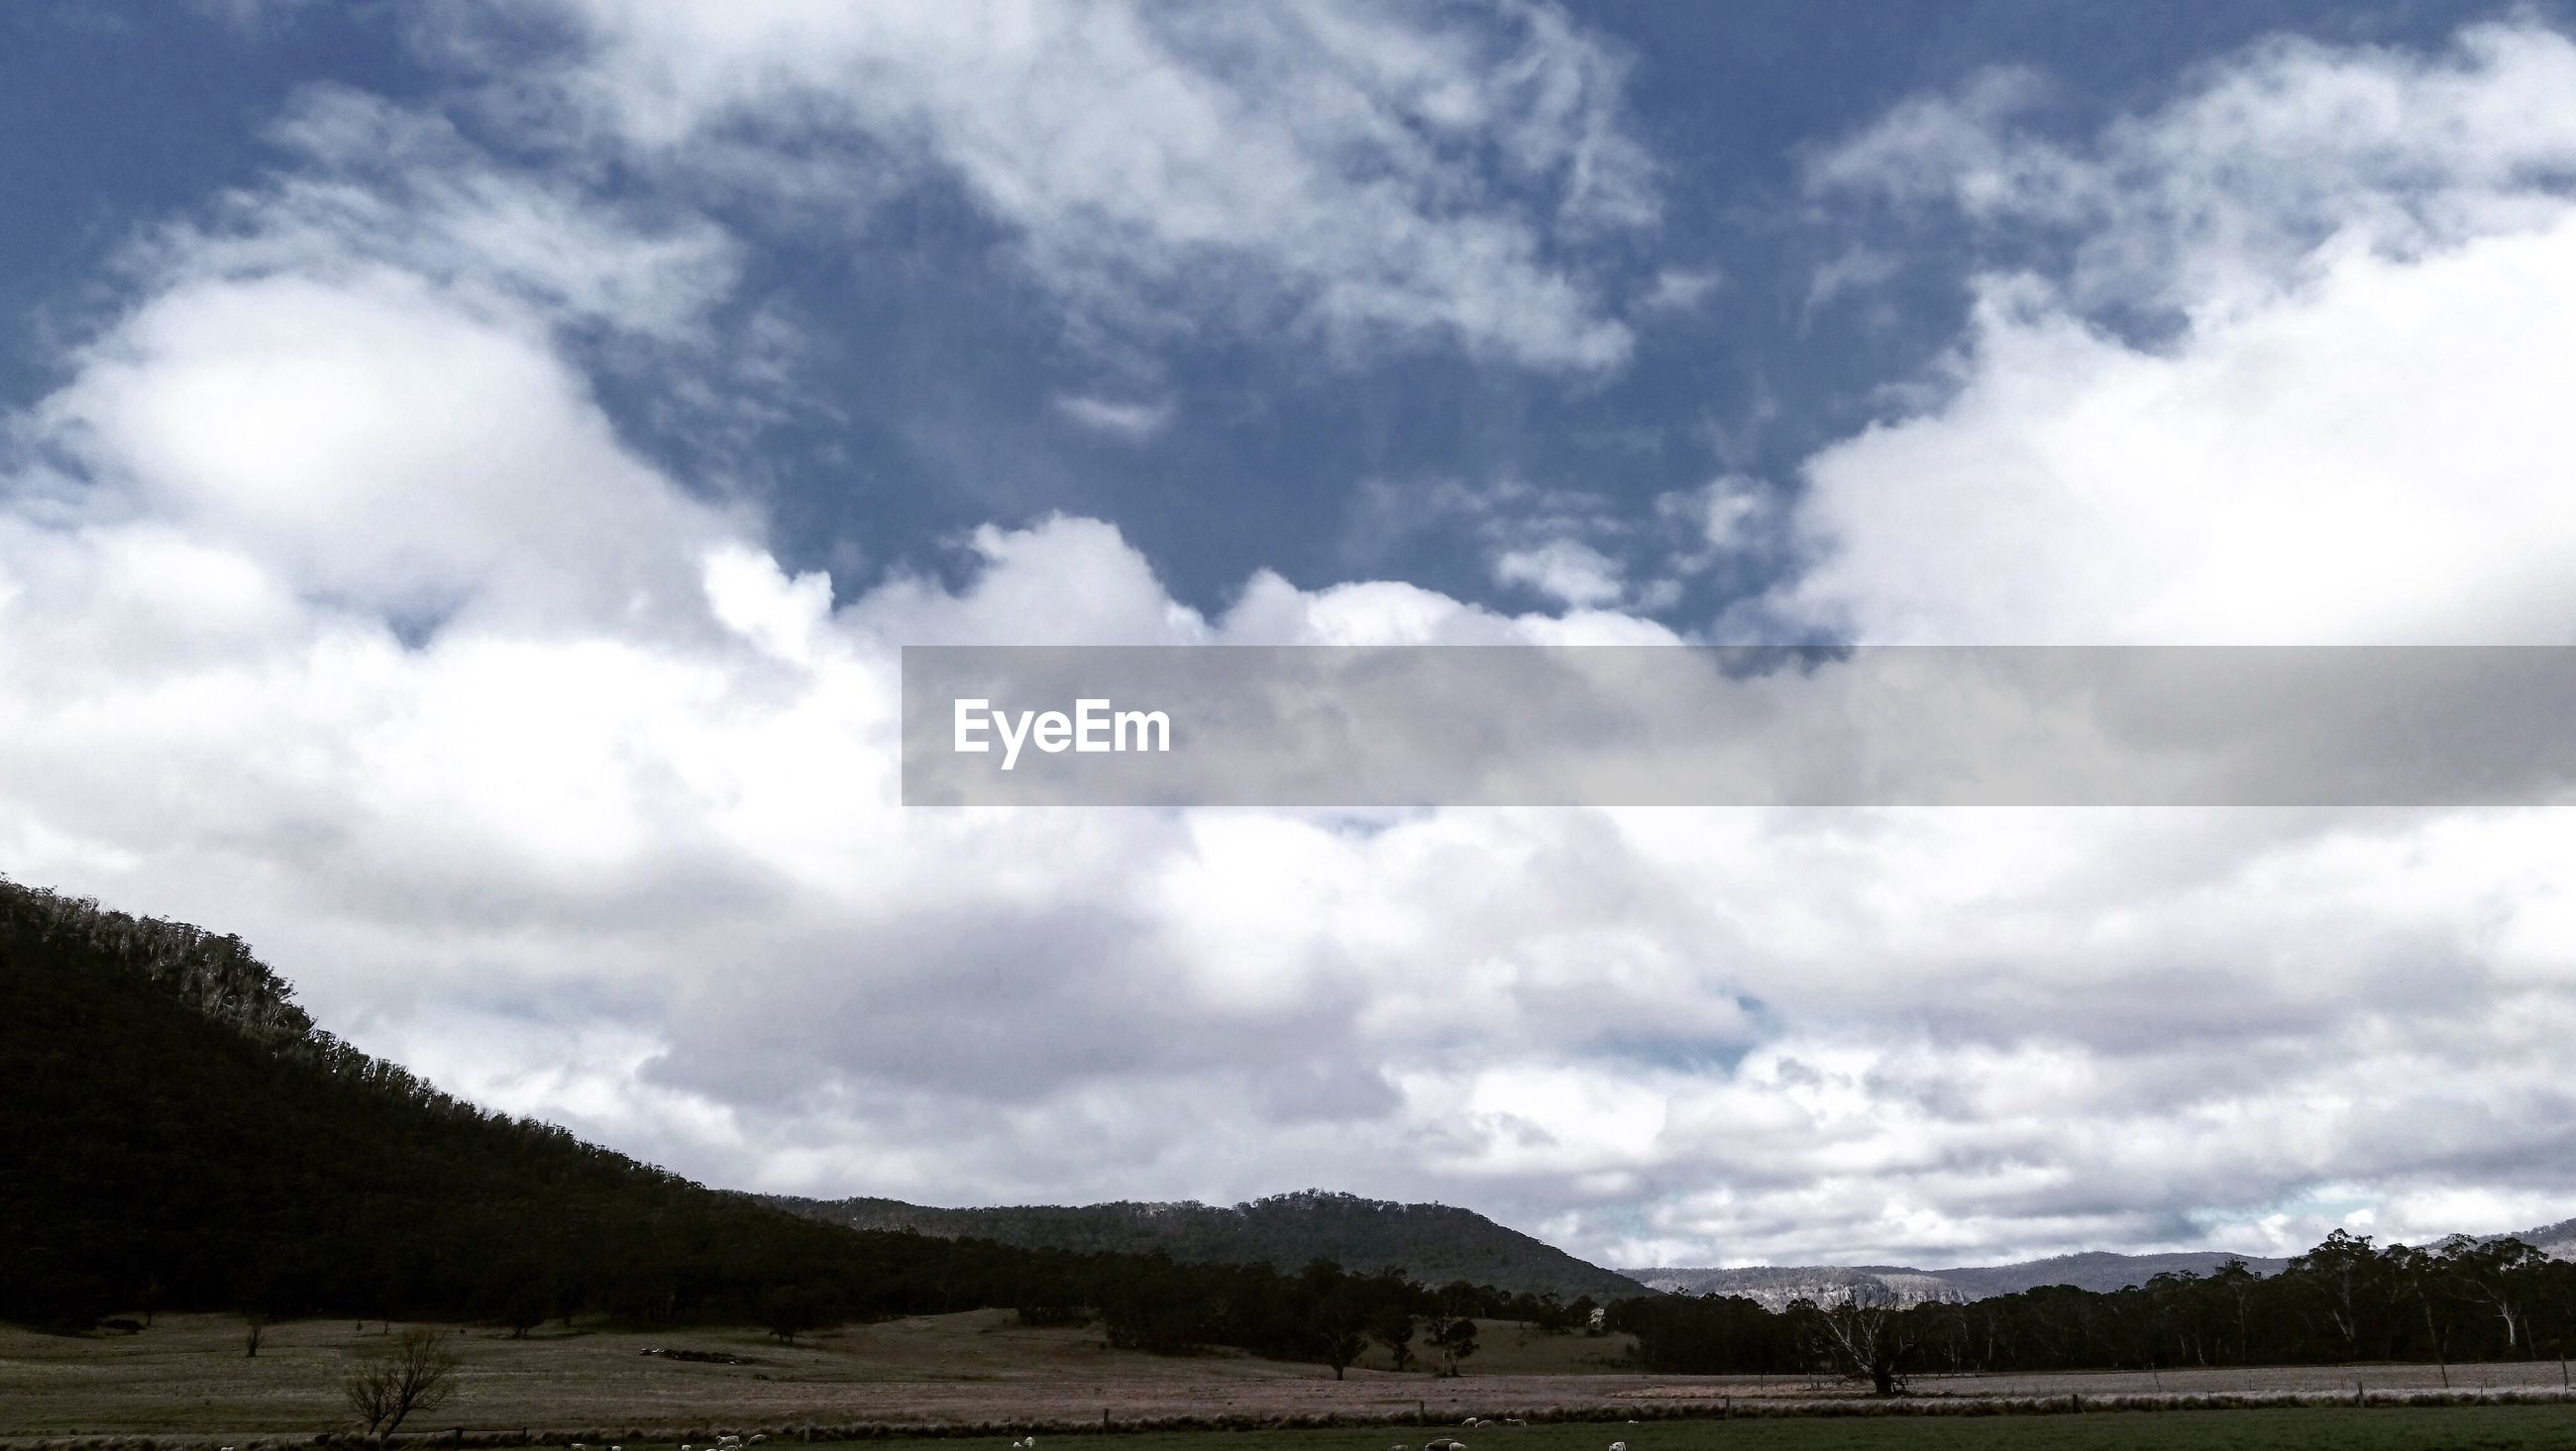 tranquil scene, tranquility, scenics, sky, beauty in nature, non-urban scene, landscape, mountain, cloud, cloud - sky, nature, idyllic, cloudscape, water, day, mountain range, cumulus cloud, majestic, sea, remote, outdoors, tourism, solitude, vacations, atmosphere, cloudy, atmospheric mood, countryside, dramatic sky, no people